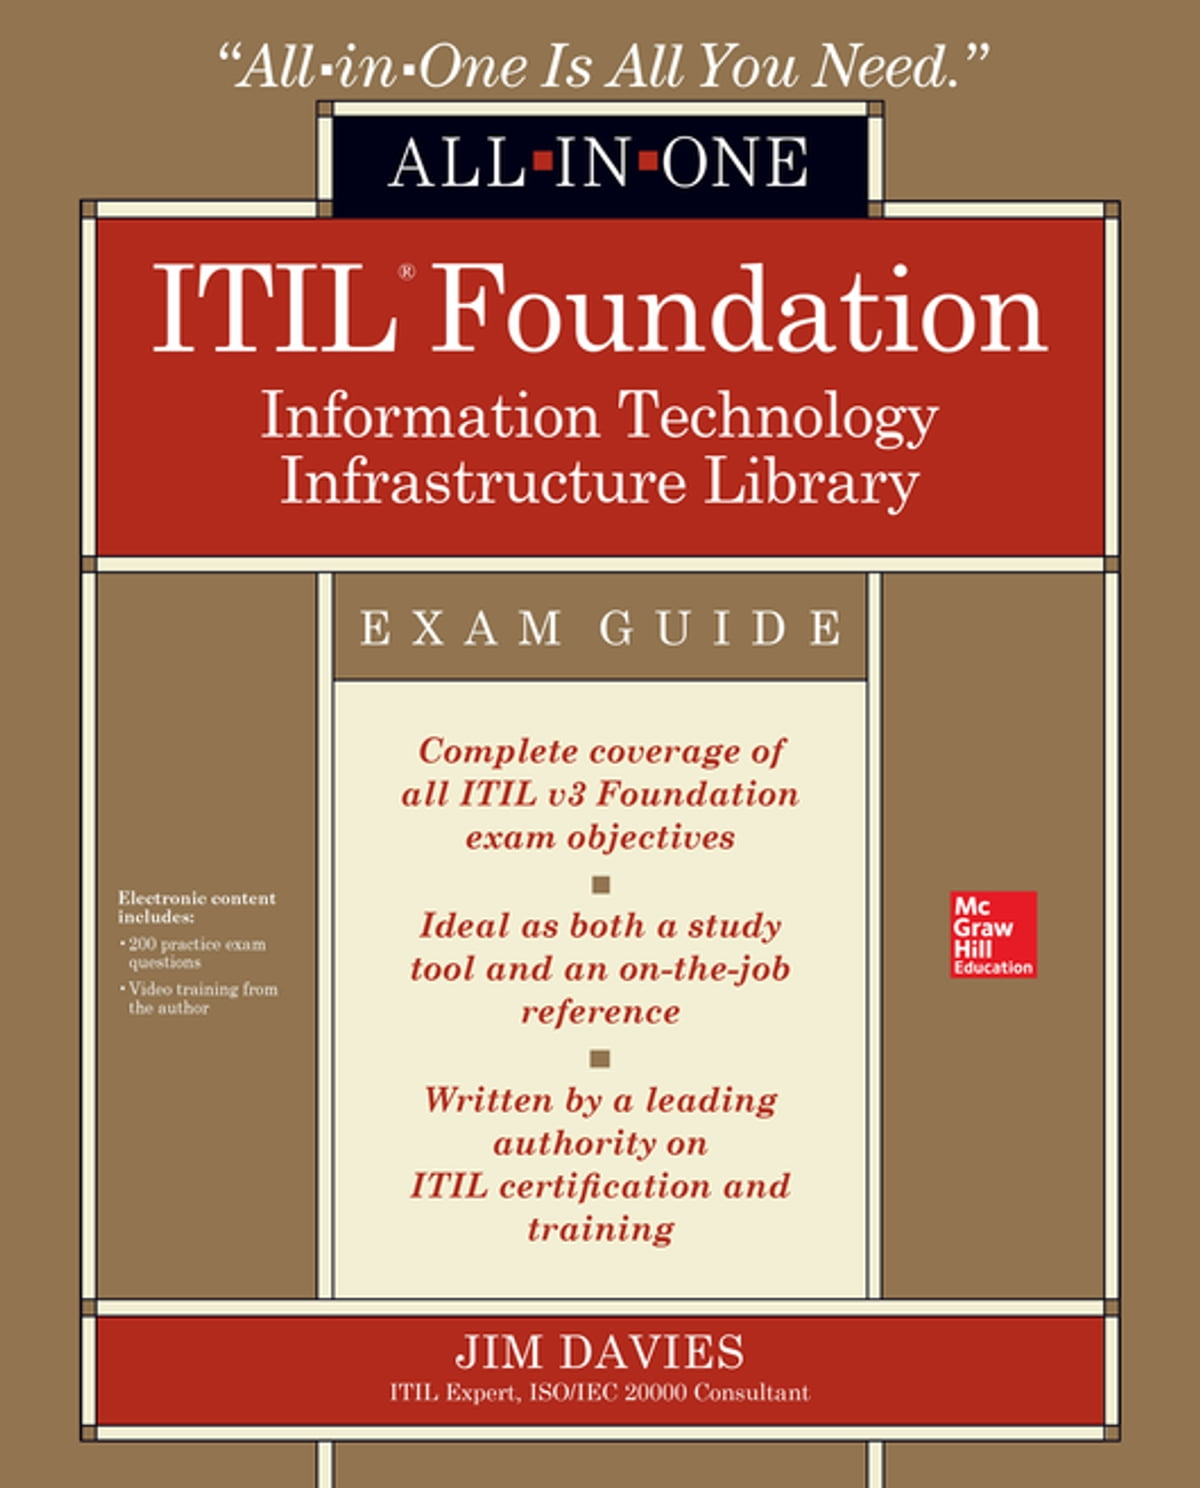 Itil foundation all in one exam guide ebook by jim davies itil foundation all in one exam guide ebook by jim davies 9780071842136 rakuten kobo xflitez Images